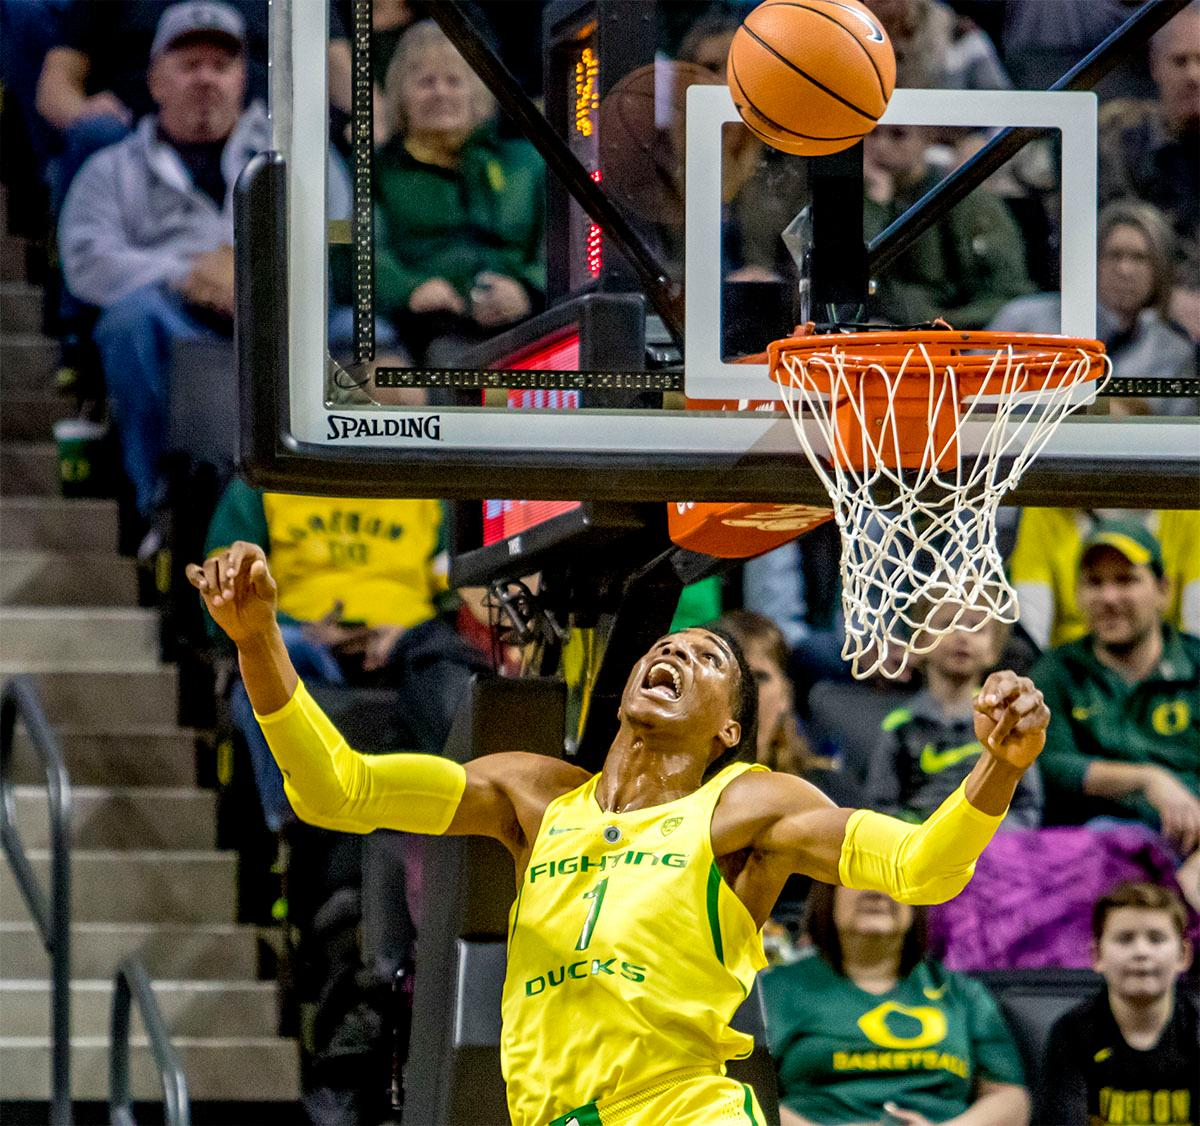 The Duck's Kenny Wooten (#1) watches the ball go up and into the basket as he defends. The Oregon Ducks defeated the Colorado Buffaloes 77-62 at Matthew Knight Arena on Sunday. Troy Brown had a season-high score of 21 points, Elijah Brown added 17, while Kenny Wooten and Payton Pritchard added 13 and 12 respectively. Oregon is now 1-1 in conference play. The Ducks next face off against the Oregon State Beavers in Corvallis on Friday, January 5th. Photo by August Frank, Oregon News Lab